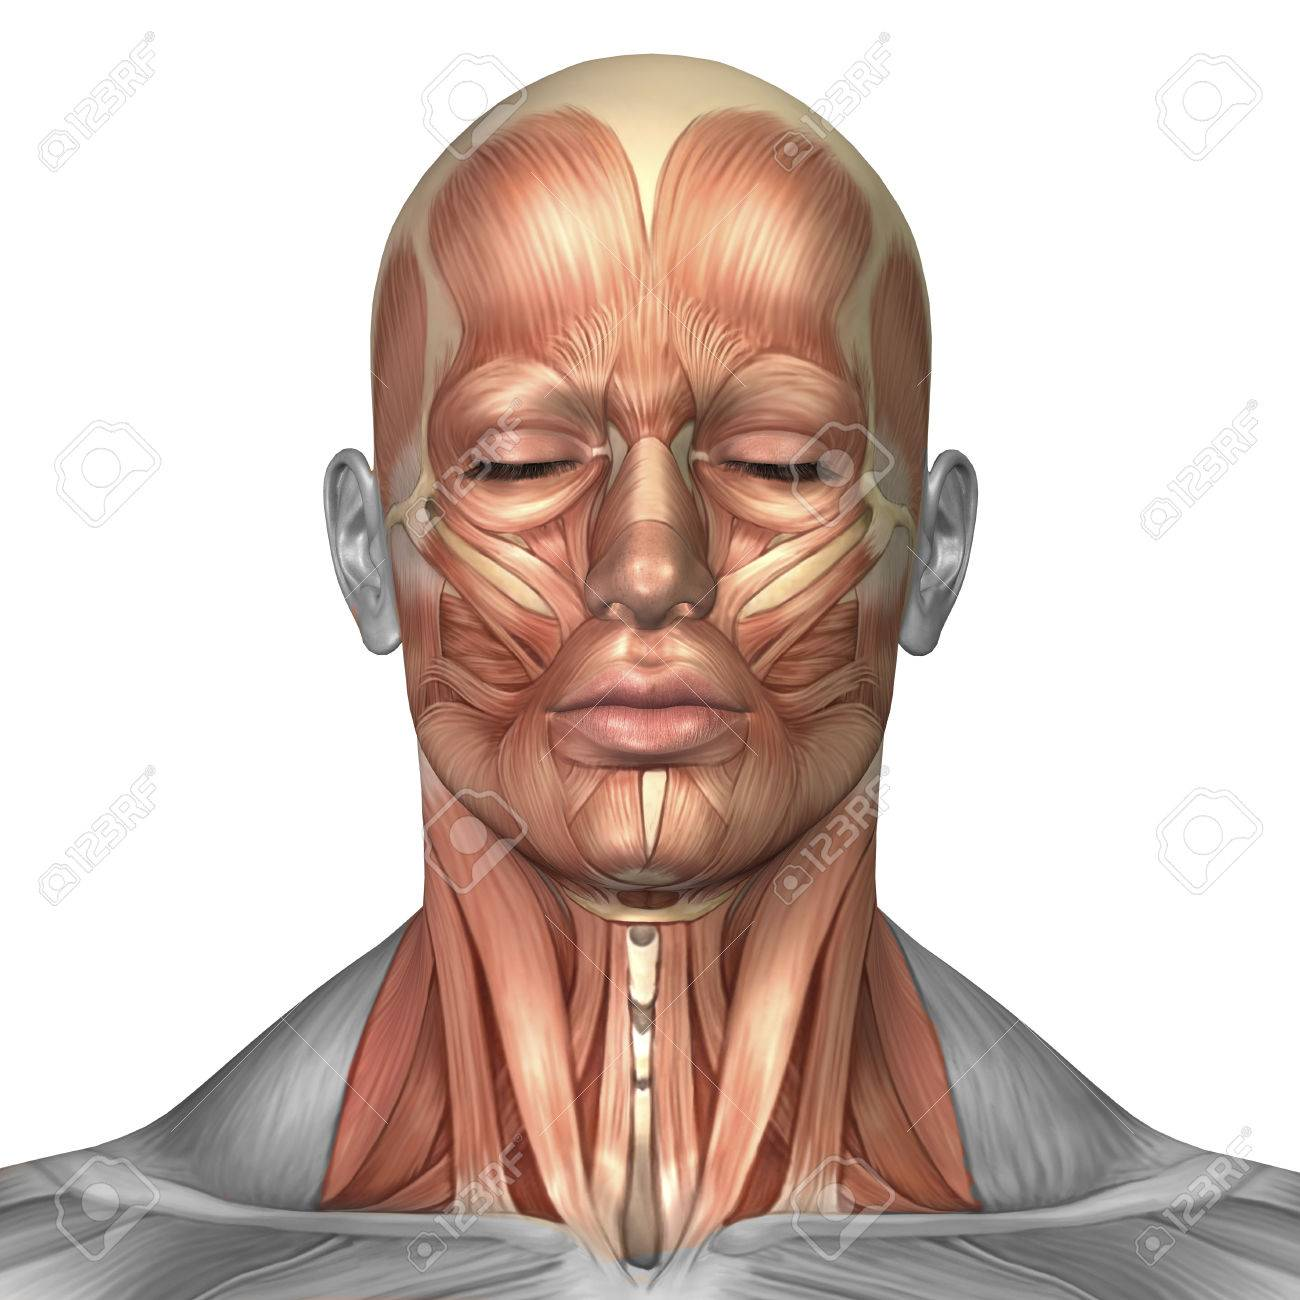 Anatomy Of Human Face And Neck Muscles Front View Stock Photo